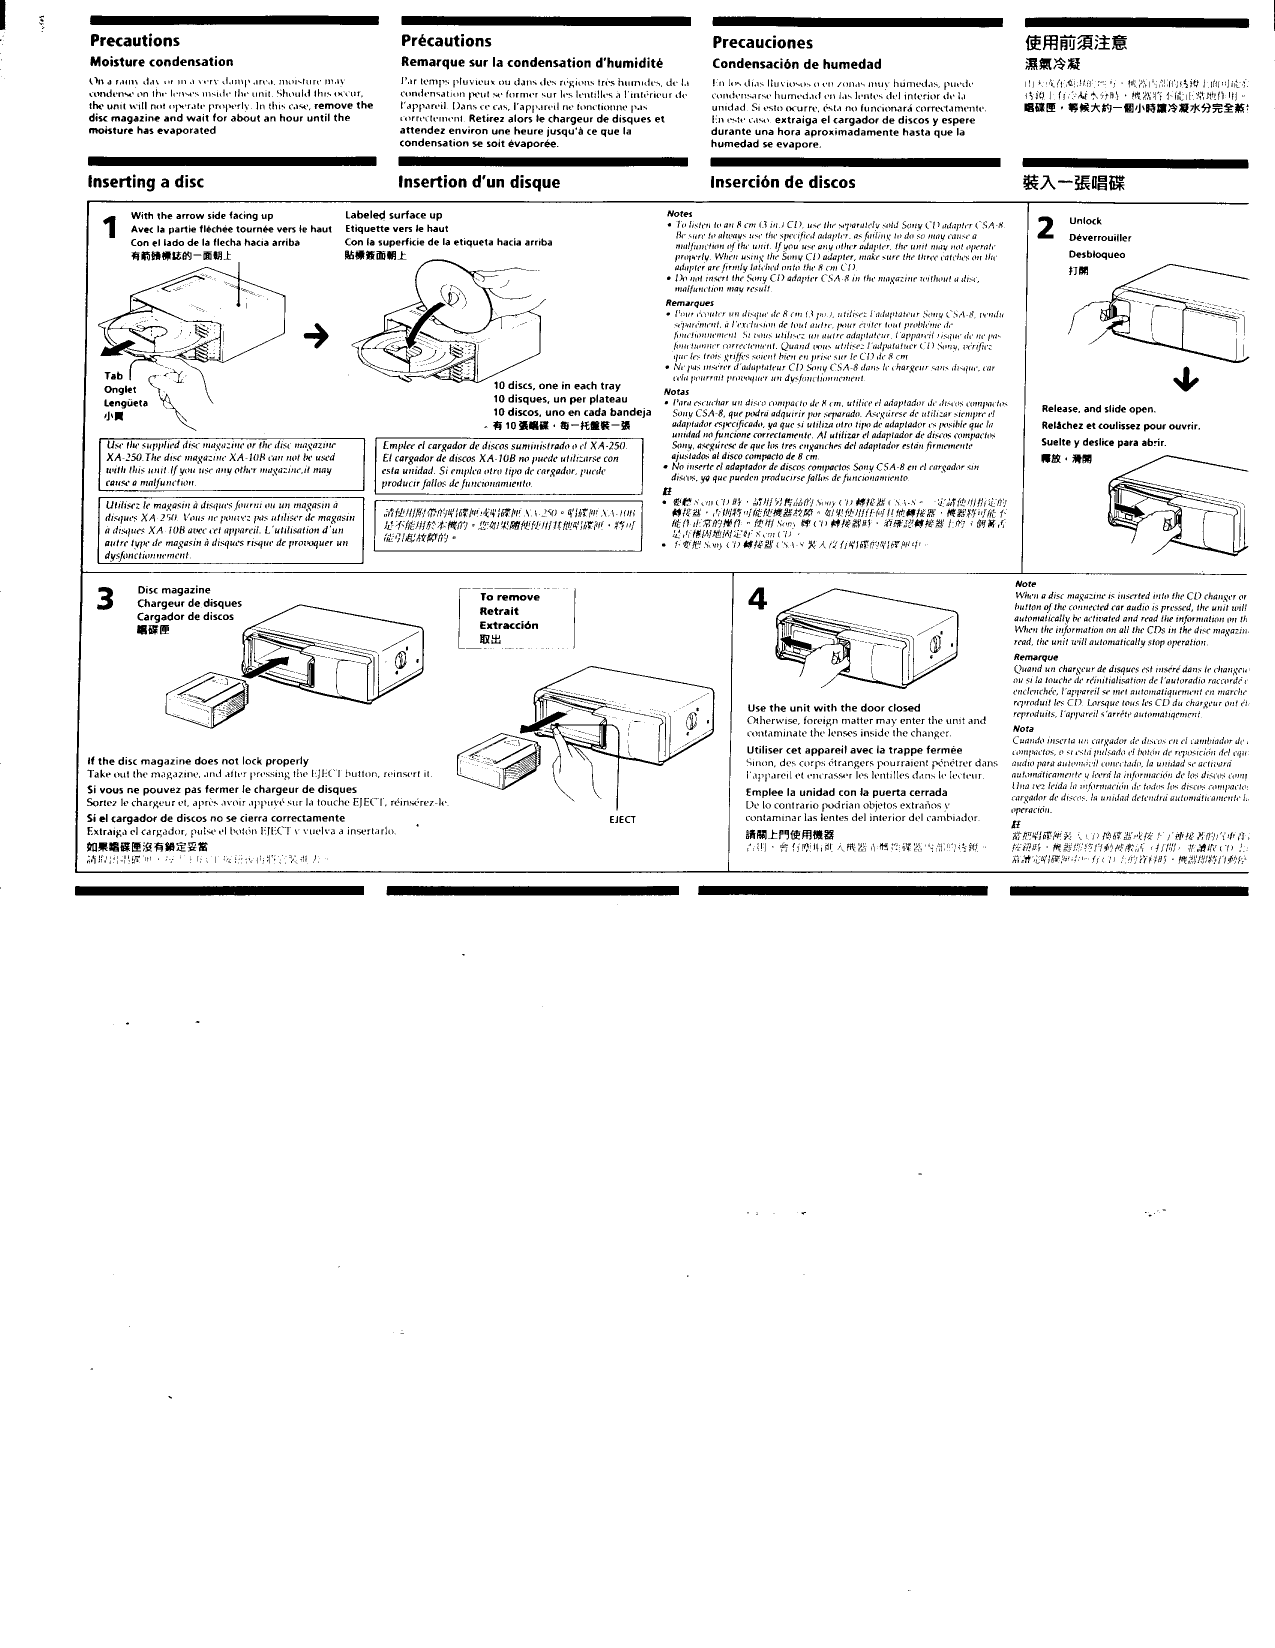 Sony Cdx 715 Users Manual